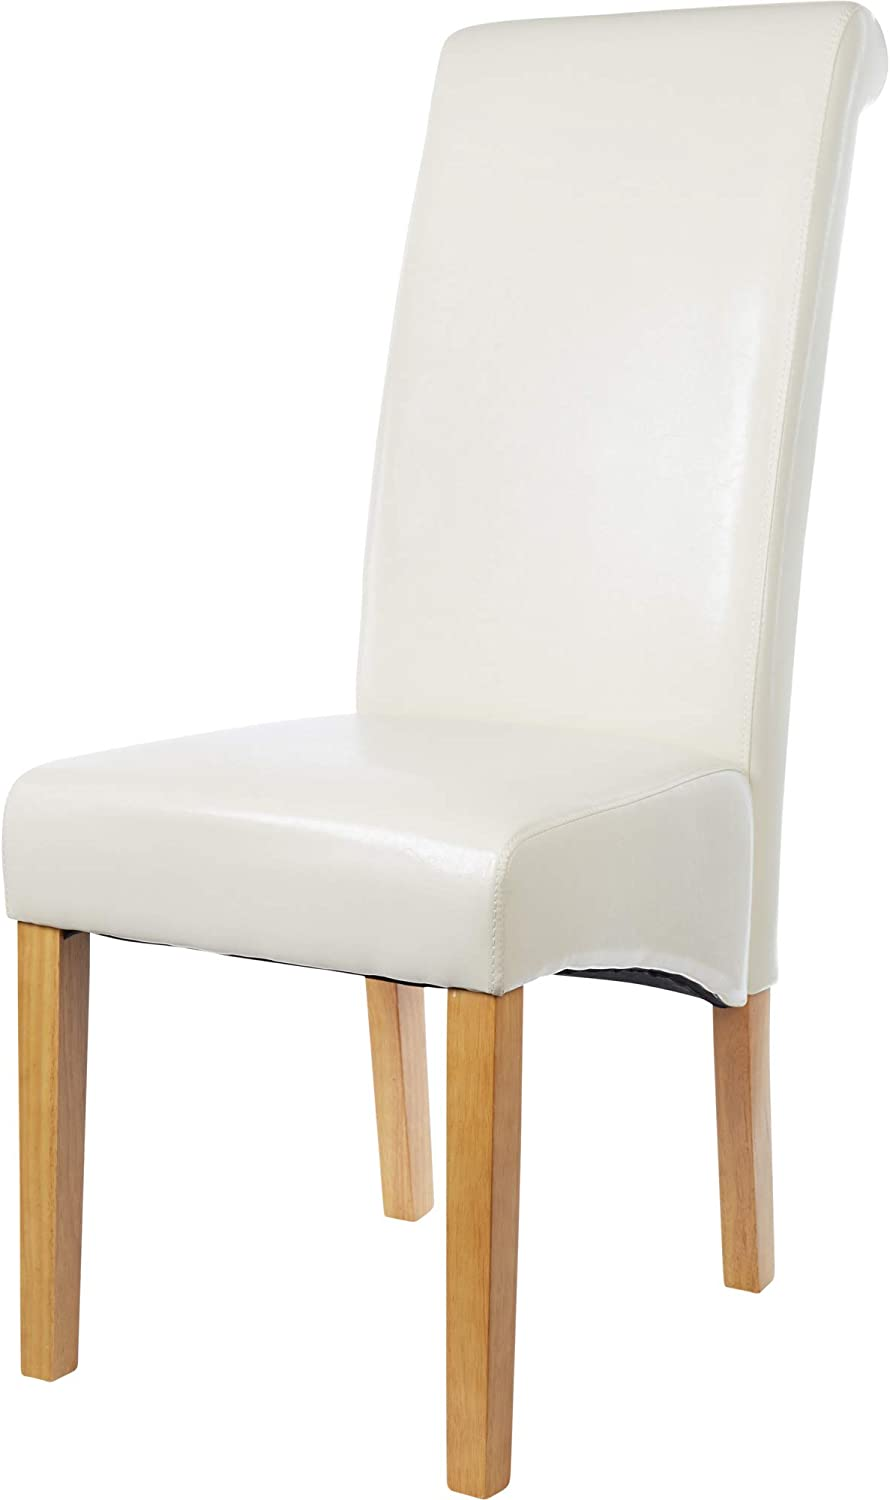 JTF Mega Discount Warehouse London Faux Leather Dining Chairs ...